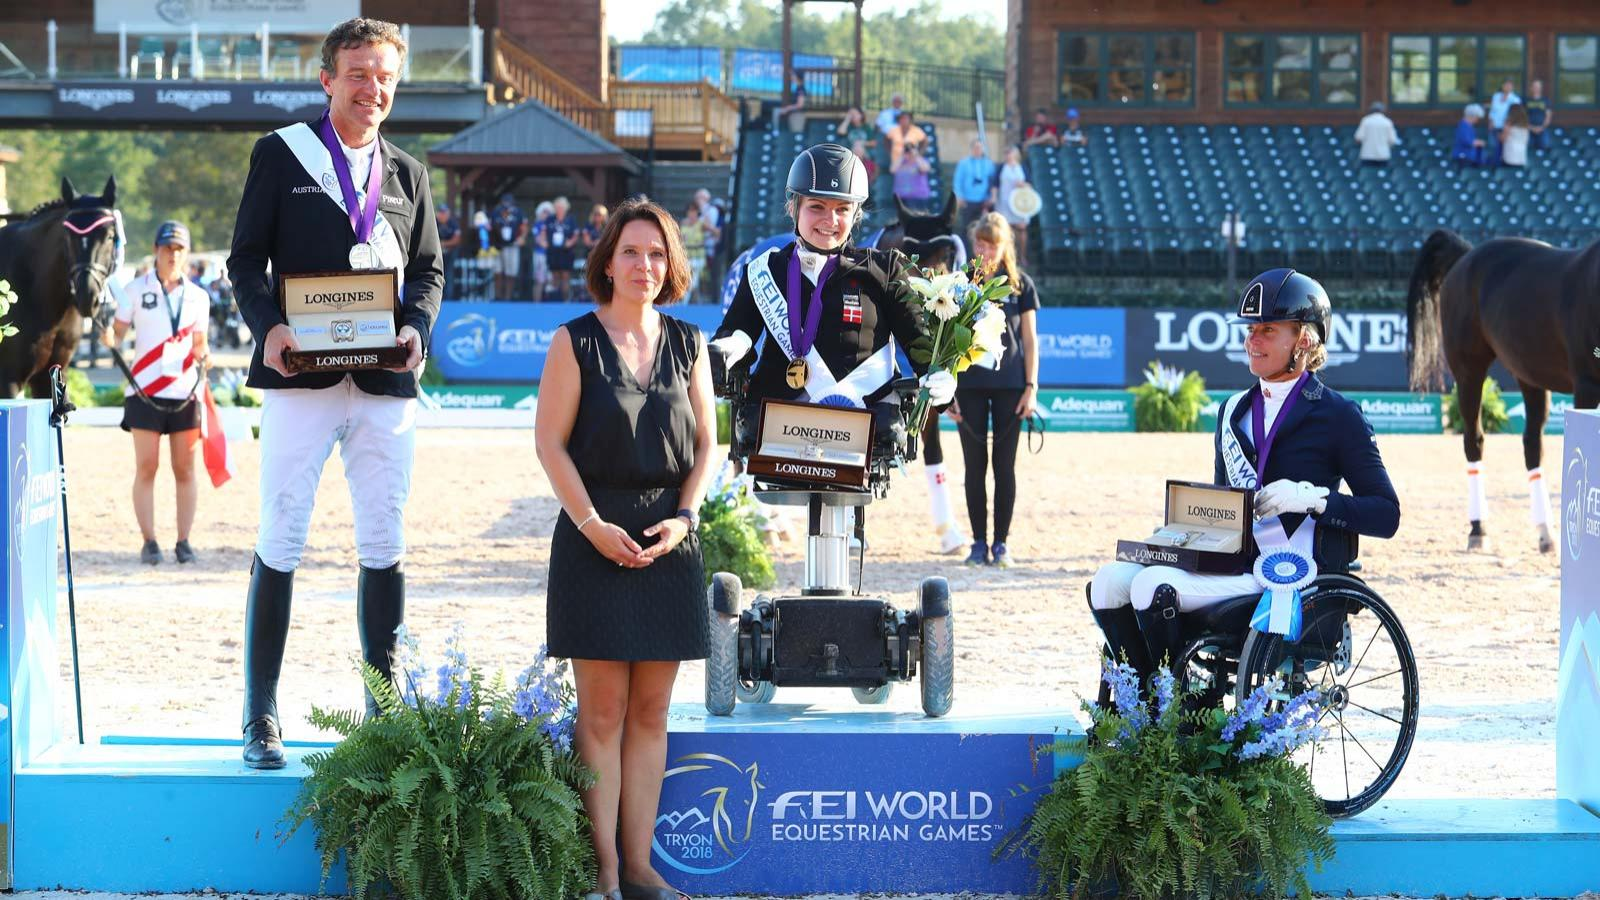 tryon 2018, world equestrian games,pic8